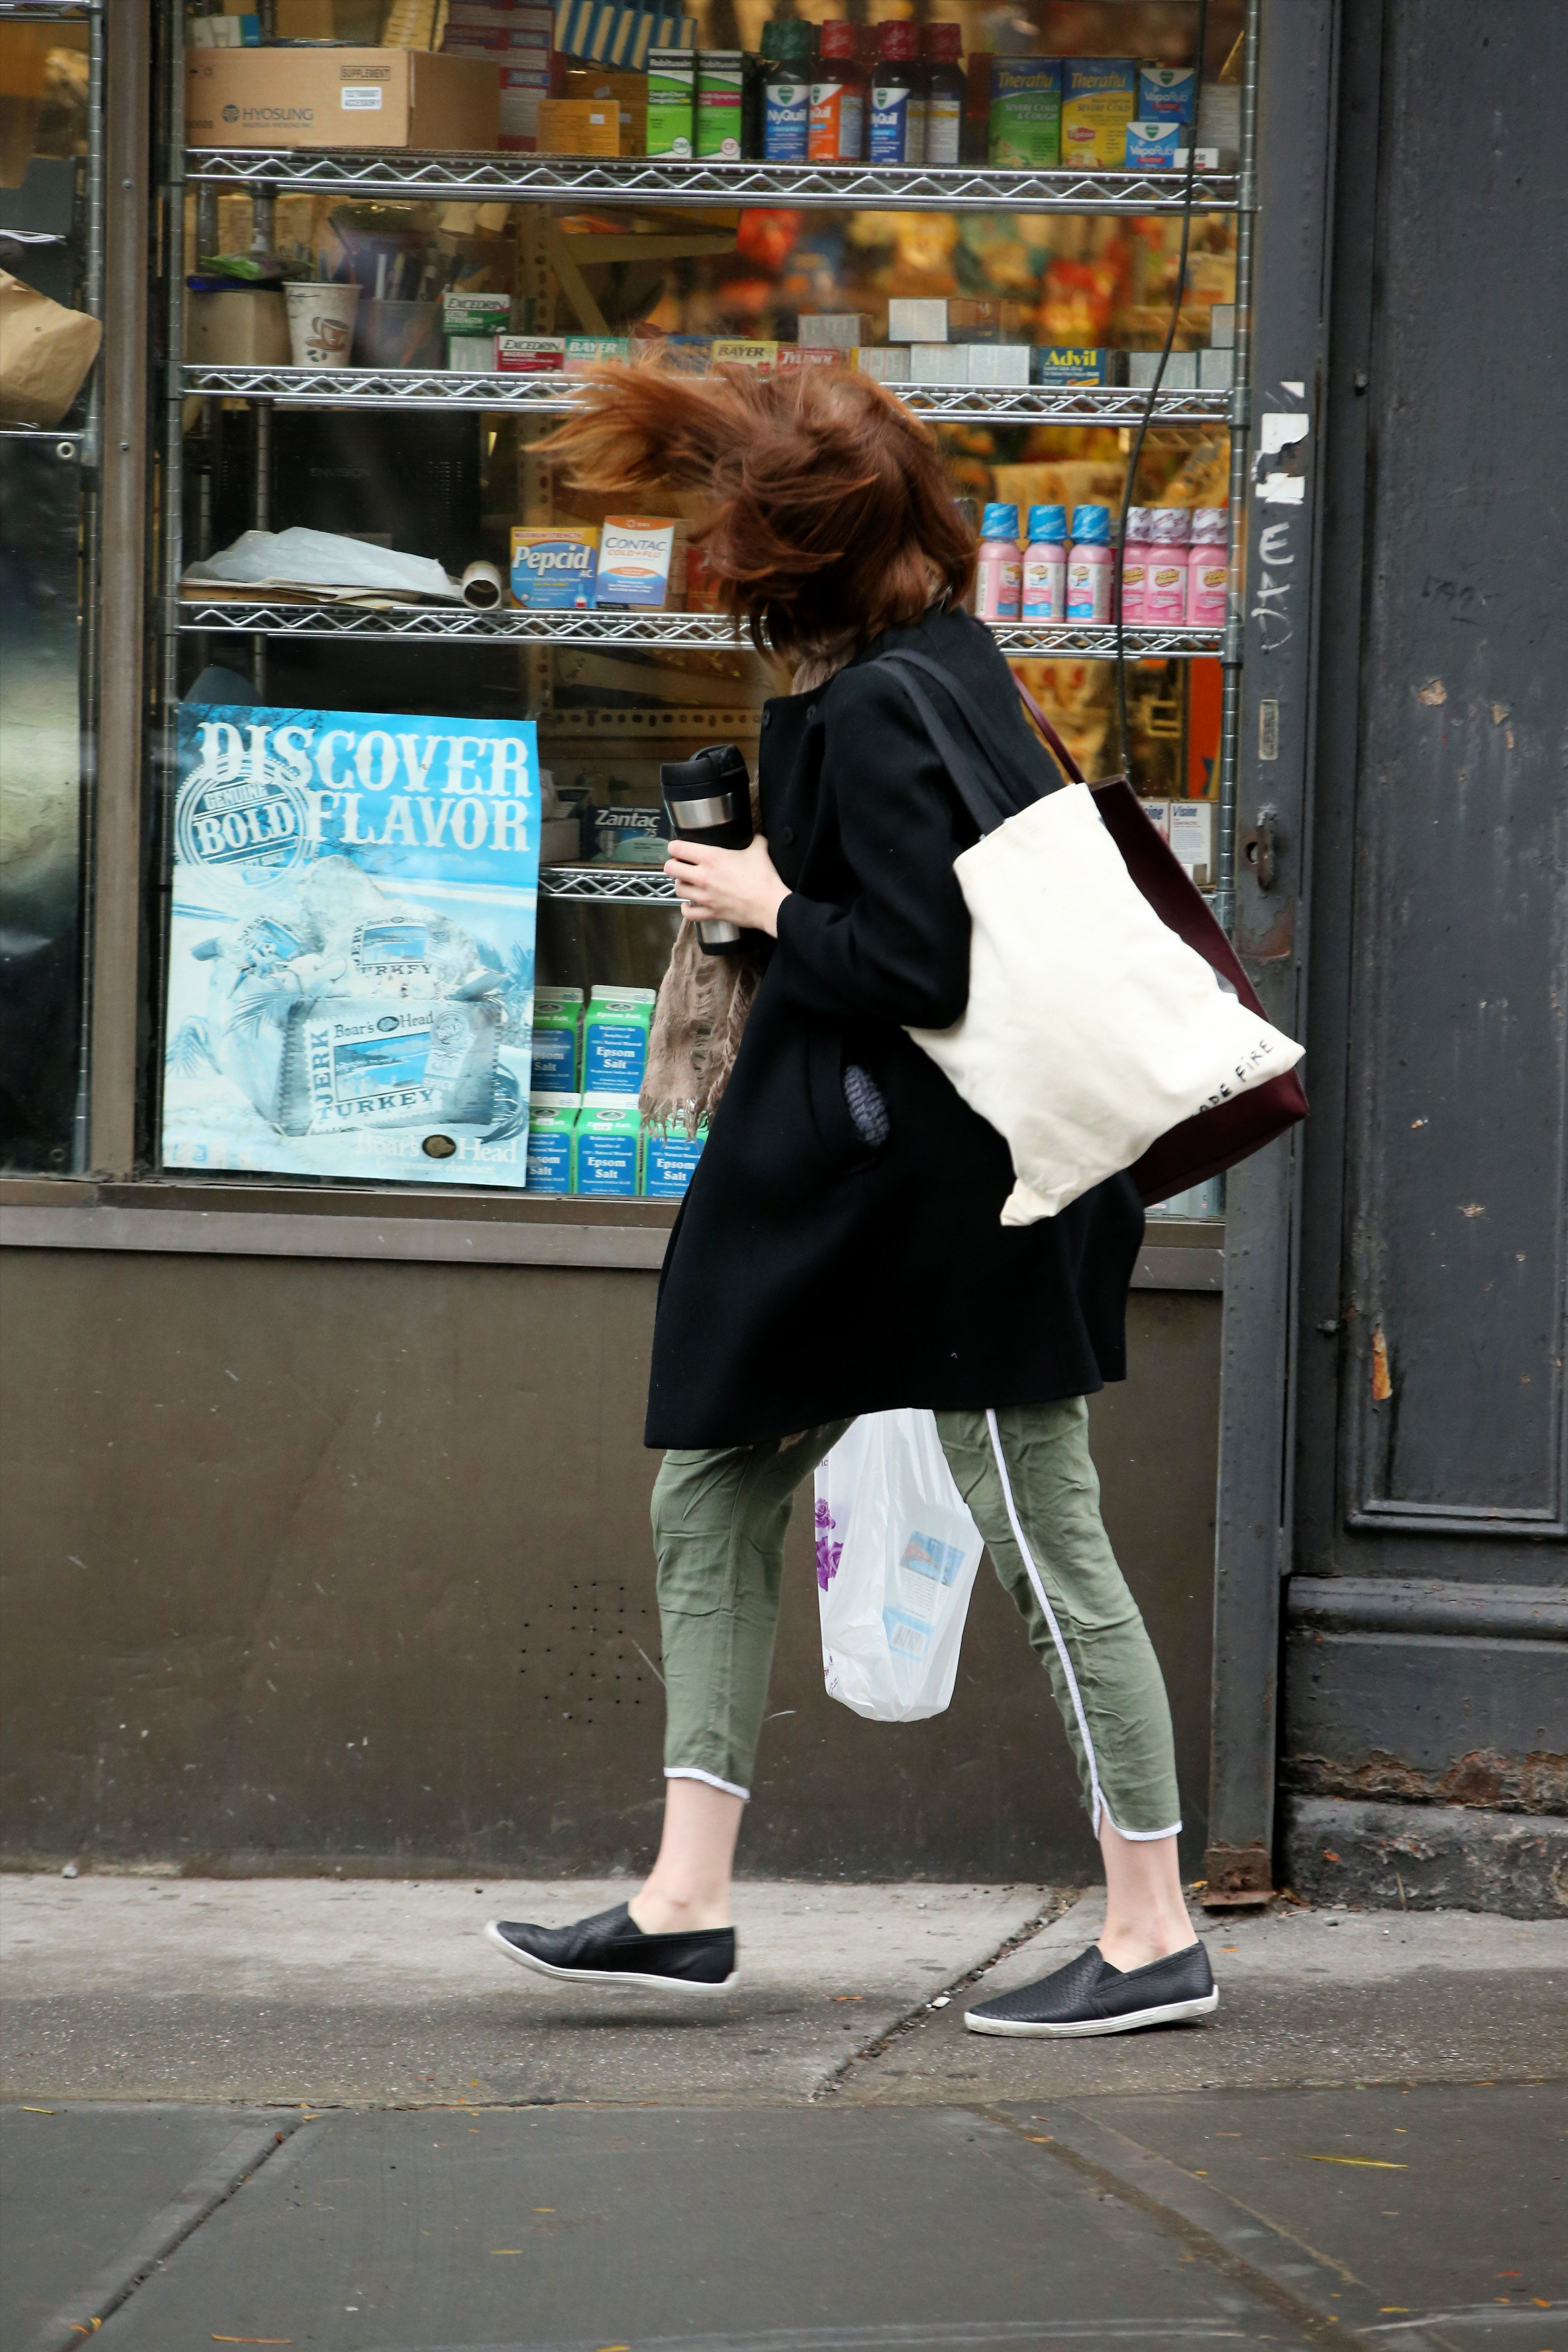 Actress Emma Stone gets into a hair battle with the wind as she grabs a cup of coffee before her matinee performance of 'Cabaret' on October 22, 2014 in West Village, New York City.&lt&#x3B;P&gt&#x3B;Pictured: Emma Stone&lt&#x3B;P&gt&#x3B;&lt&#x3B;B&gt&#x3B;Ref: SPL872259  221014  &lt&#x3B;/B&gt&#x3B;&lt&#x3B;BR/&gt&#x3B;Picture by: Christopher Peterson/Splash News&lt&#x3B;BR/&gt&#x3B;&lt&#x3B;/P&gt&#x3B;&lt&#x3B;P&gt&#x3B;&lt&#x3B;B&gt&#x3B;Splash News and Pictures&lt&#x3B;/B&gt&#x3B;&lt&#x3B;BR/&gt&#x3B;Los Angeles:310-821-2666&lt&#x3B;BR/&gt&#x3B;New York:212-619-2666&lt&#x3B;BR/&gt&#x3B;London:870-934-2666&lt&#x3B;BR/&gt&#x3B;photodesk@splashnews.com&lt&#x3B;BR/&gt&#x3B;&lt&#x3B;/P&gt&#x3B;